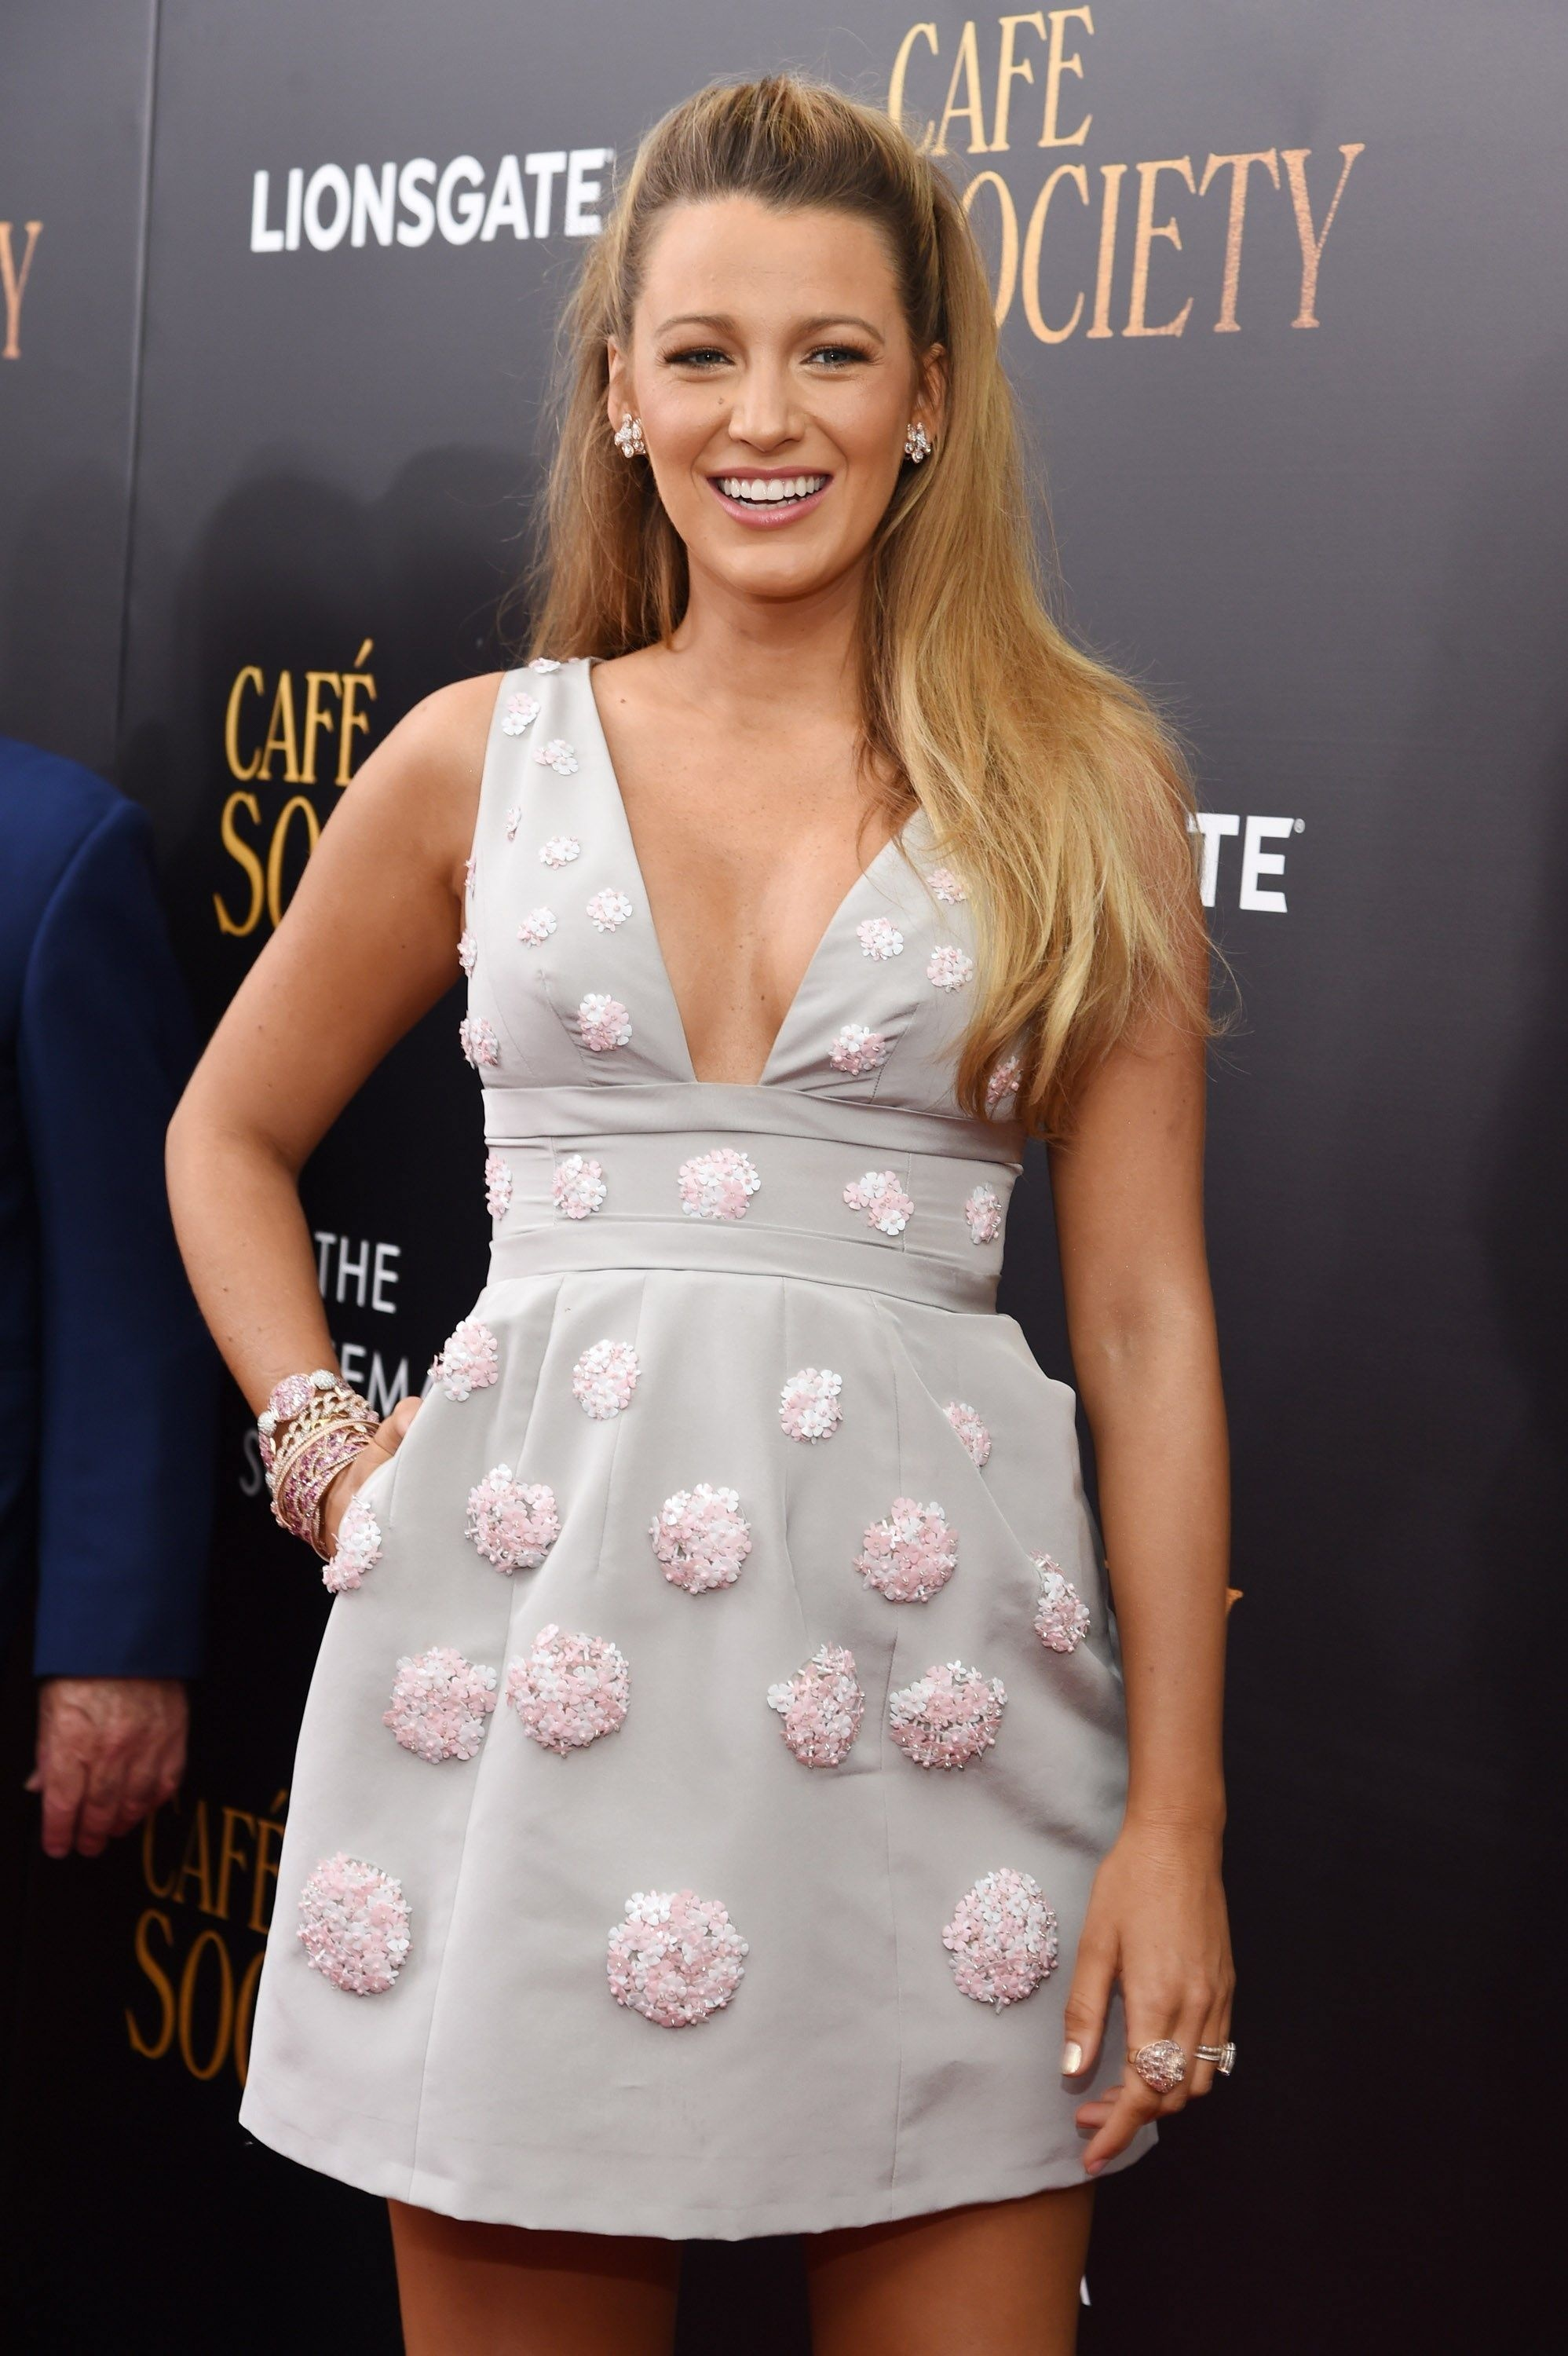 blake_lively_attends_the_premiere7